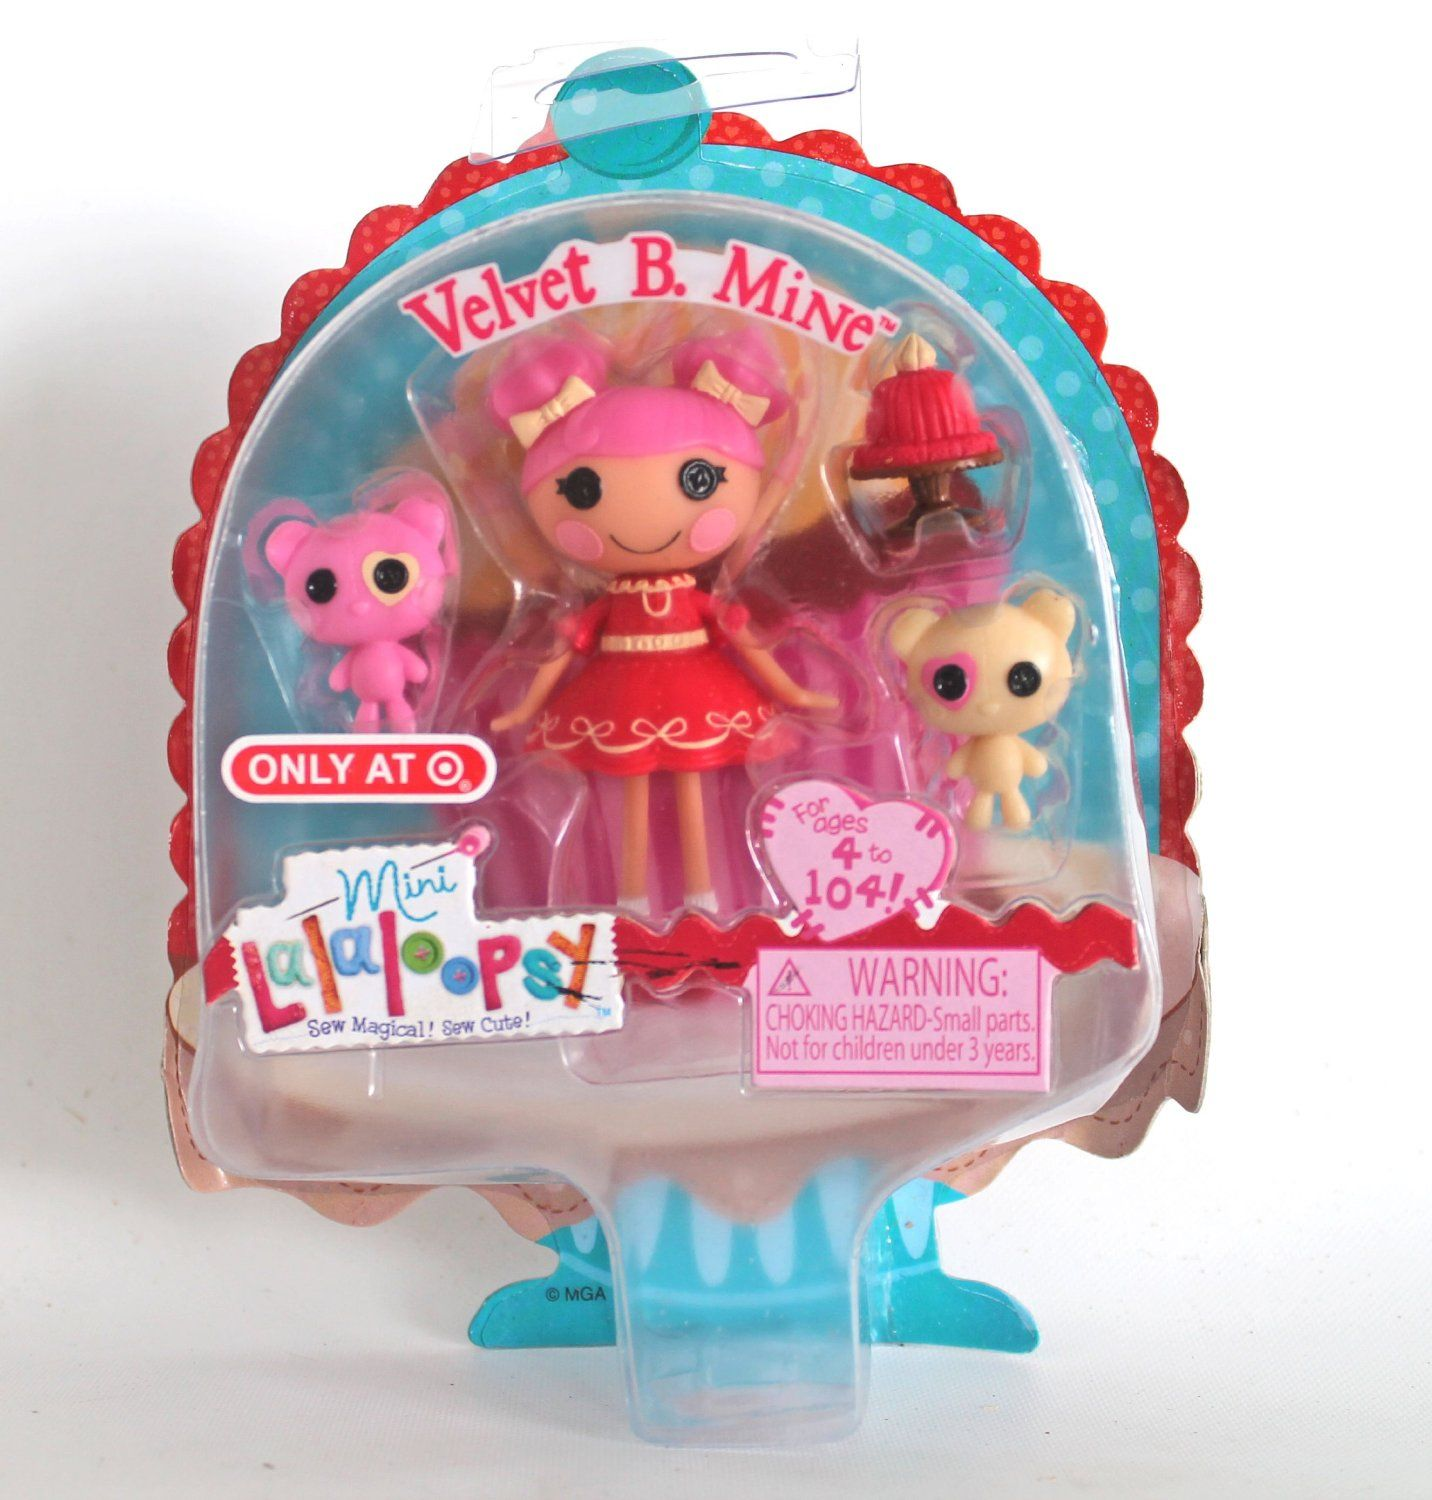 Mine Brand New Mini Lalaloopsy Valentines 2014 Target Exclusive Velvet B